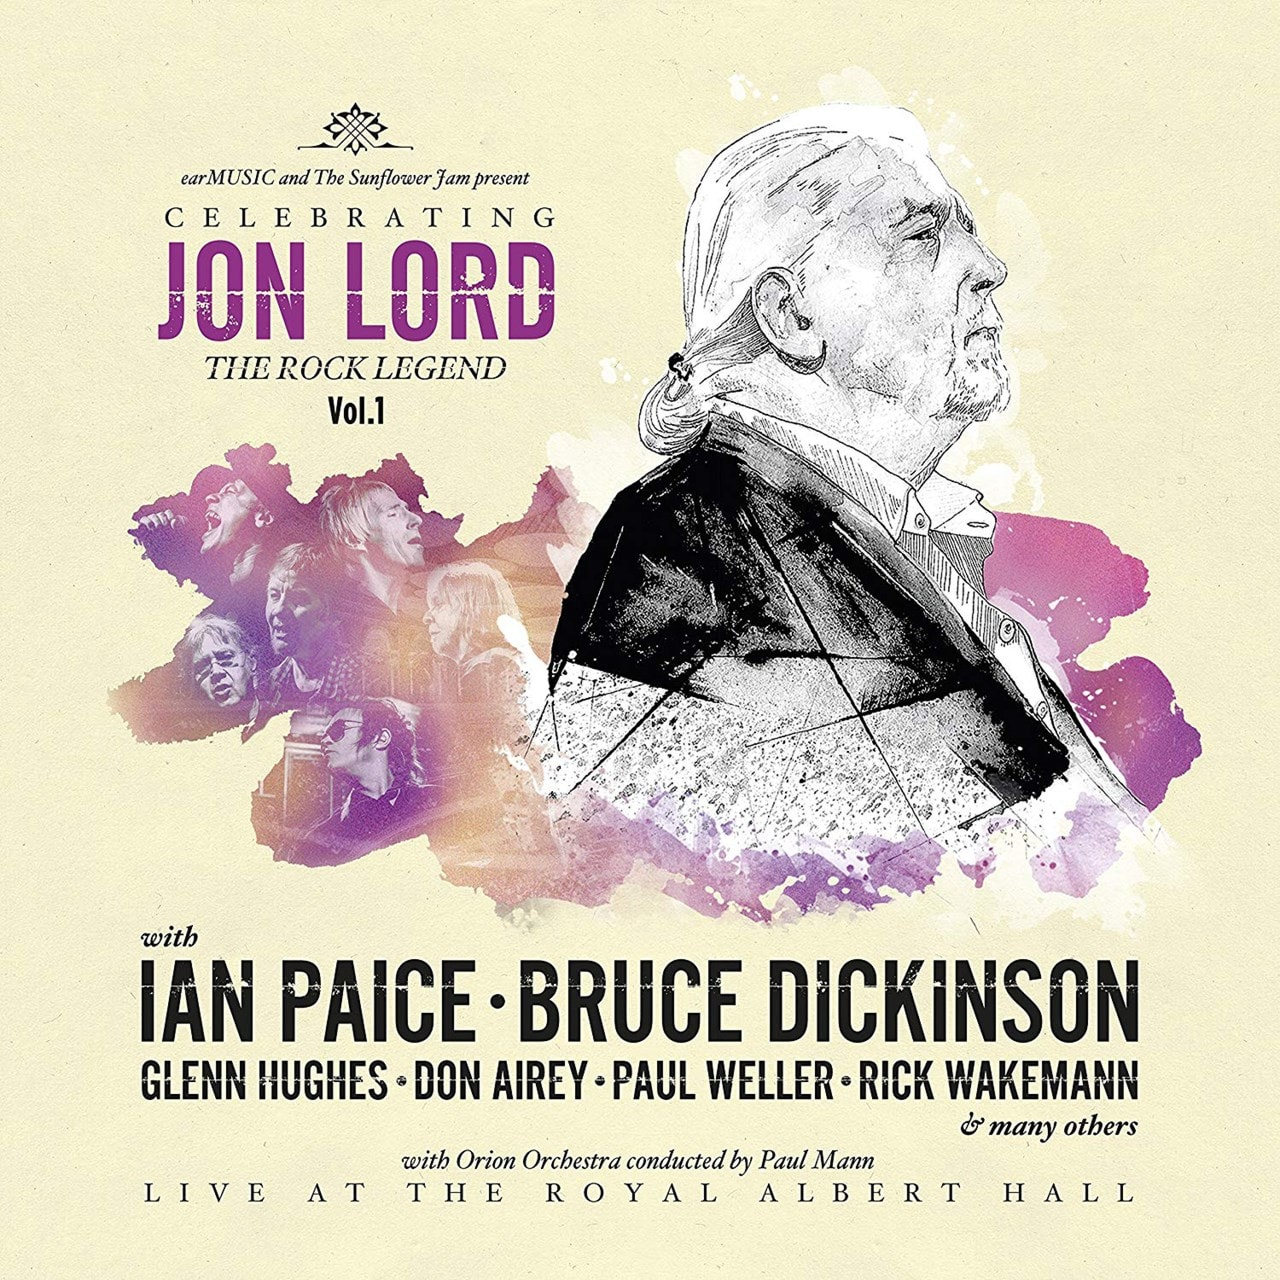 Celebrating Jon Lord: The Rock Legend - Volume 1 - 1